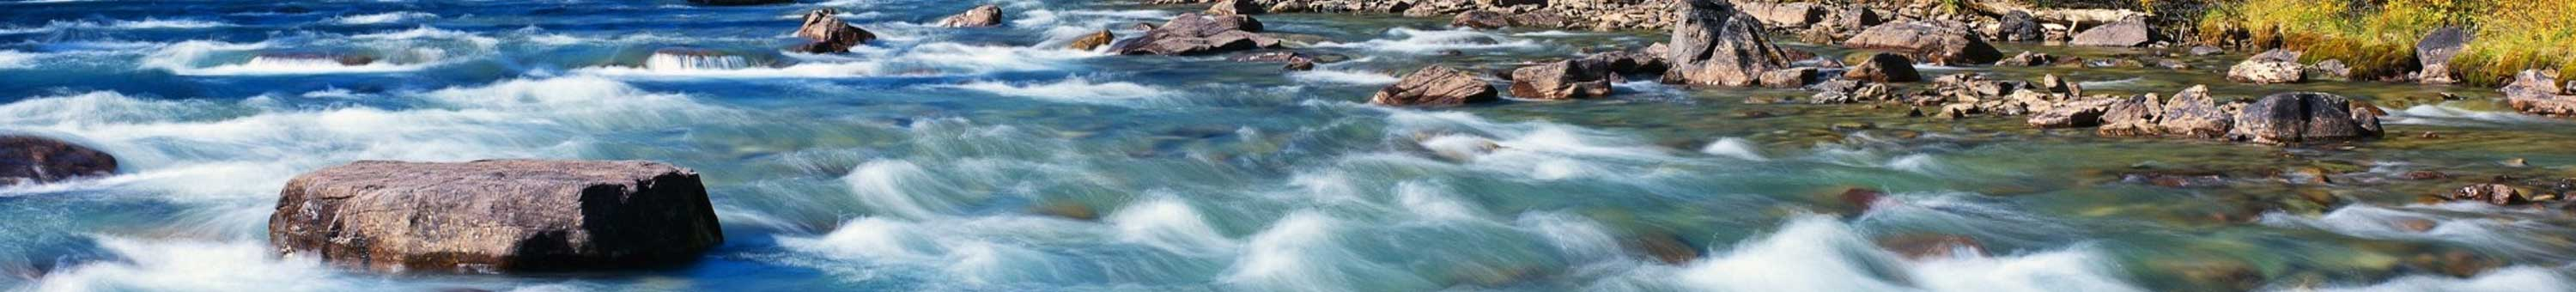 A rapid stream with rocks within and on the outer banks